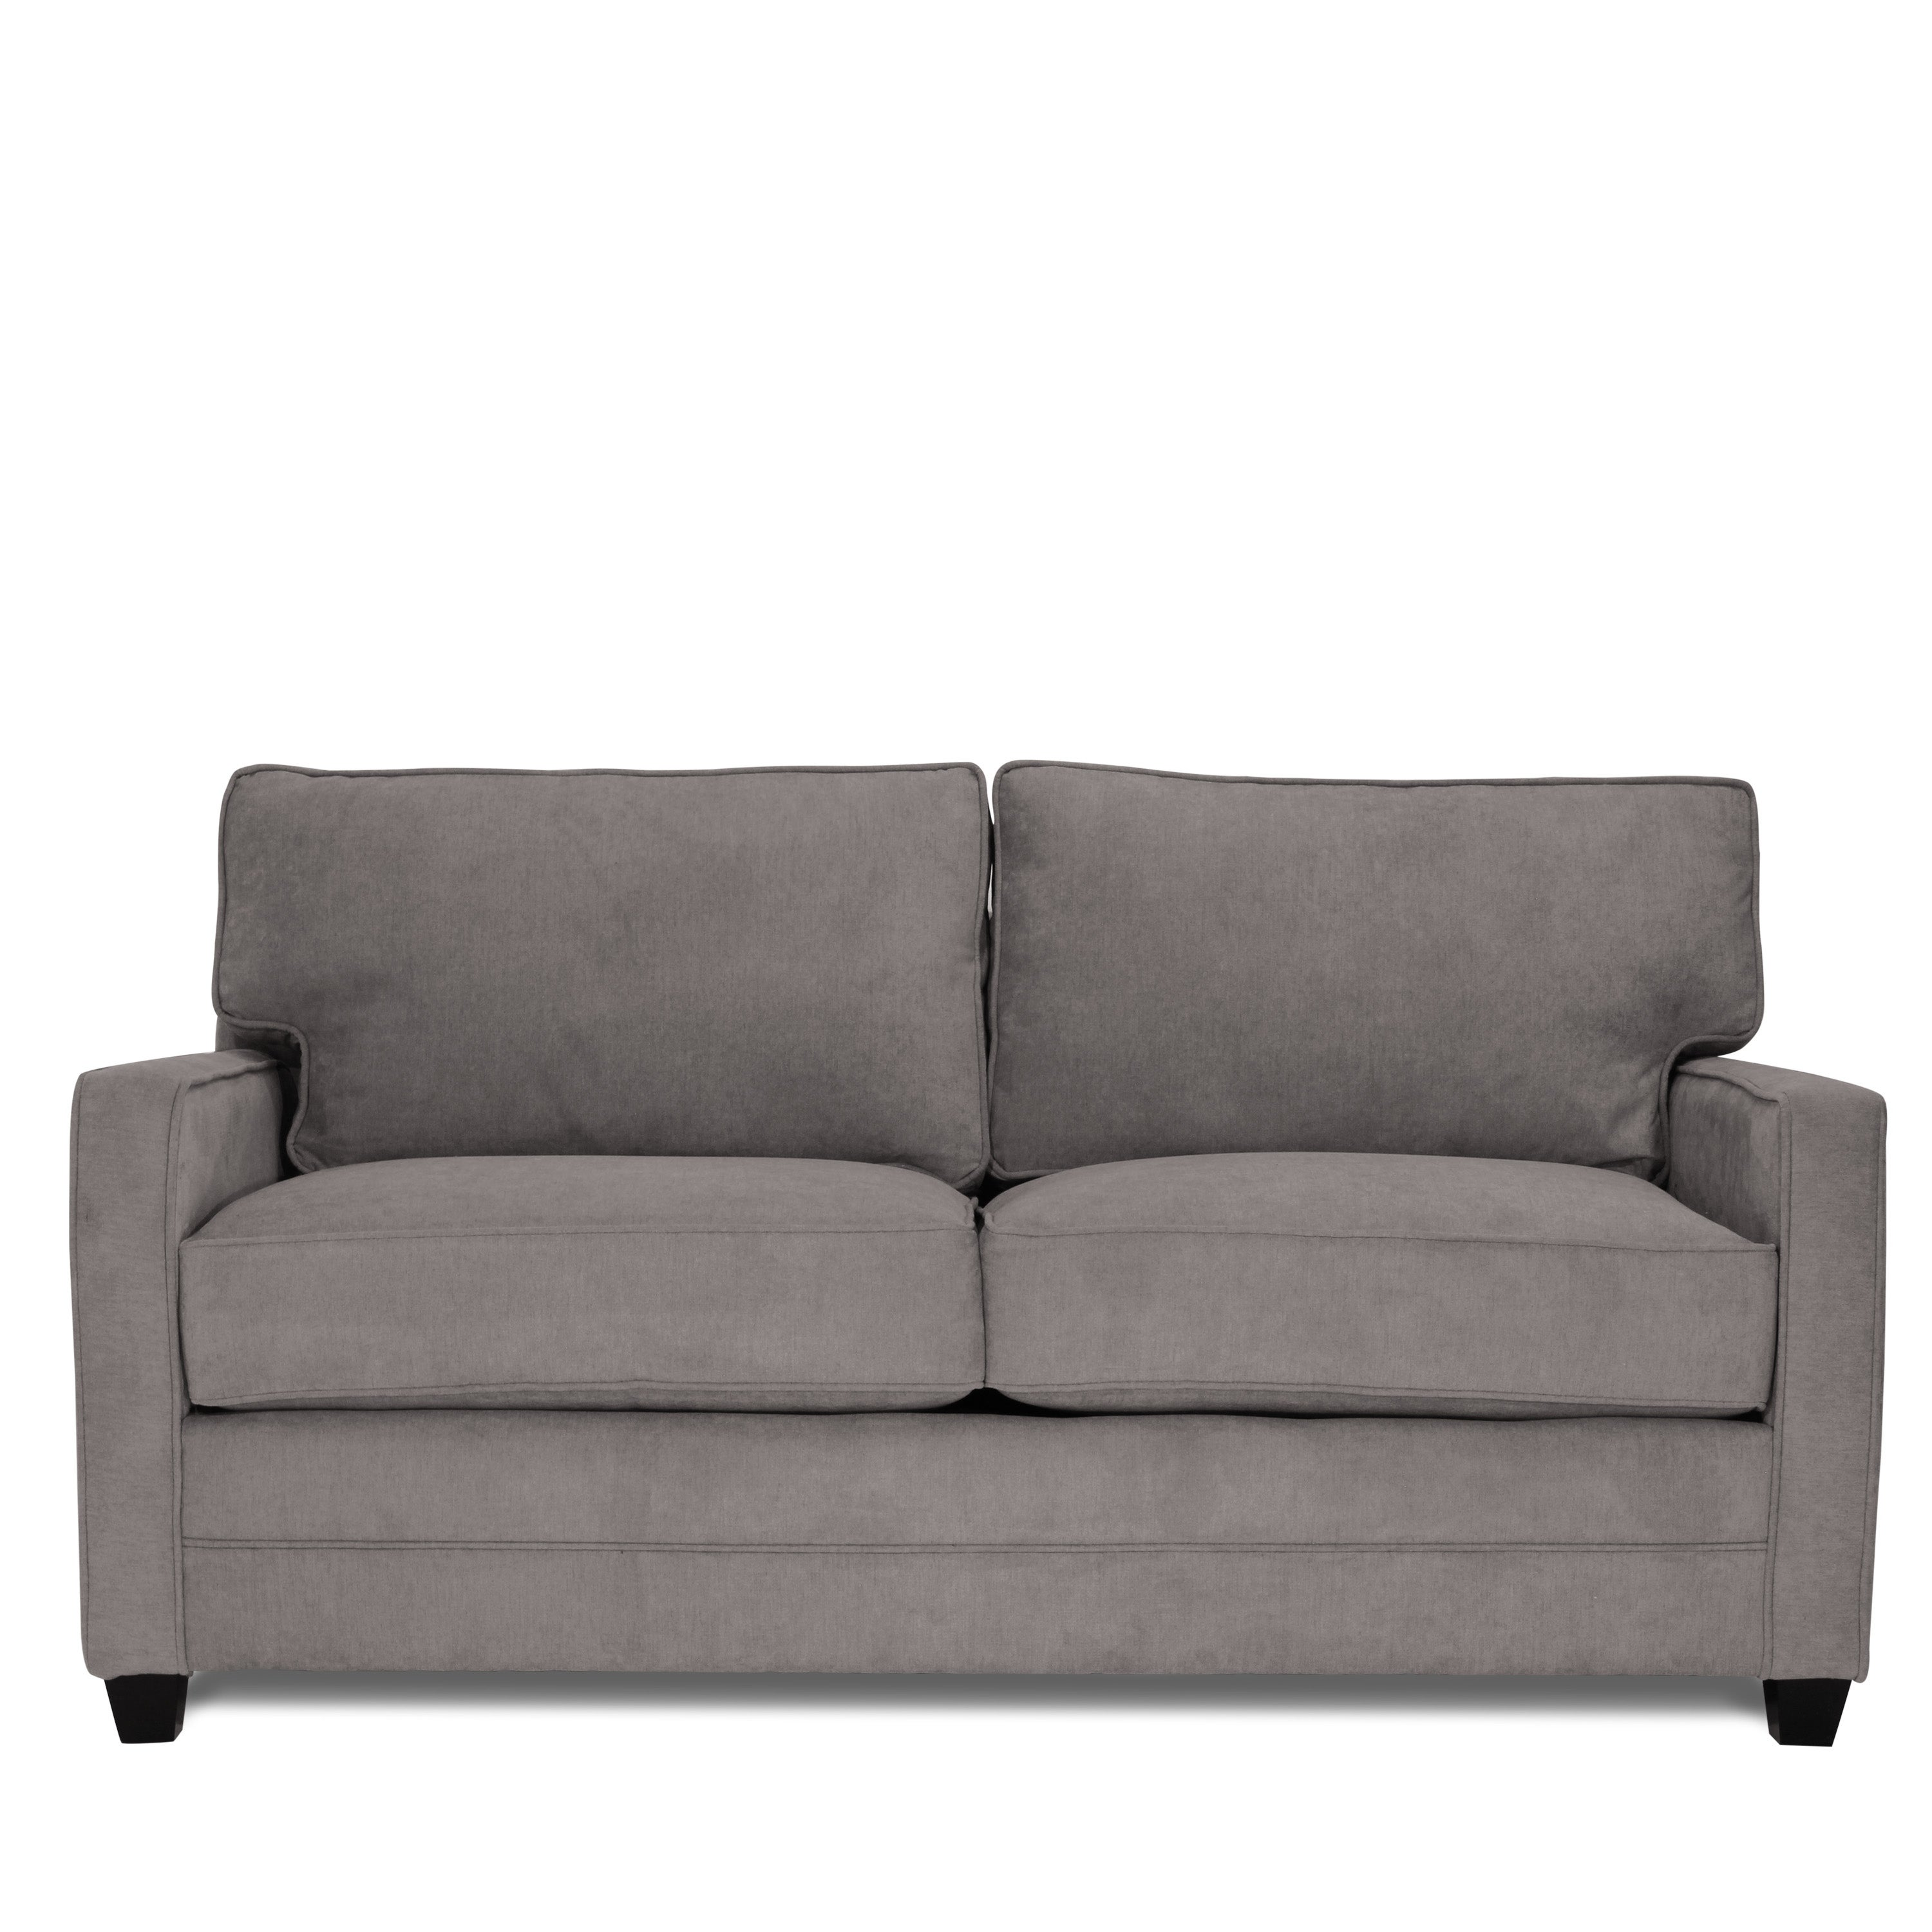 - Shop Price Full Size Sleeper Sofa - Overstock - 28365032